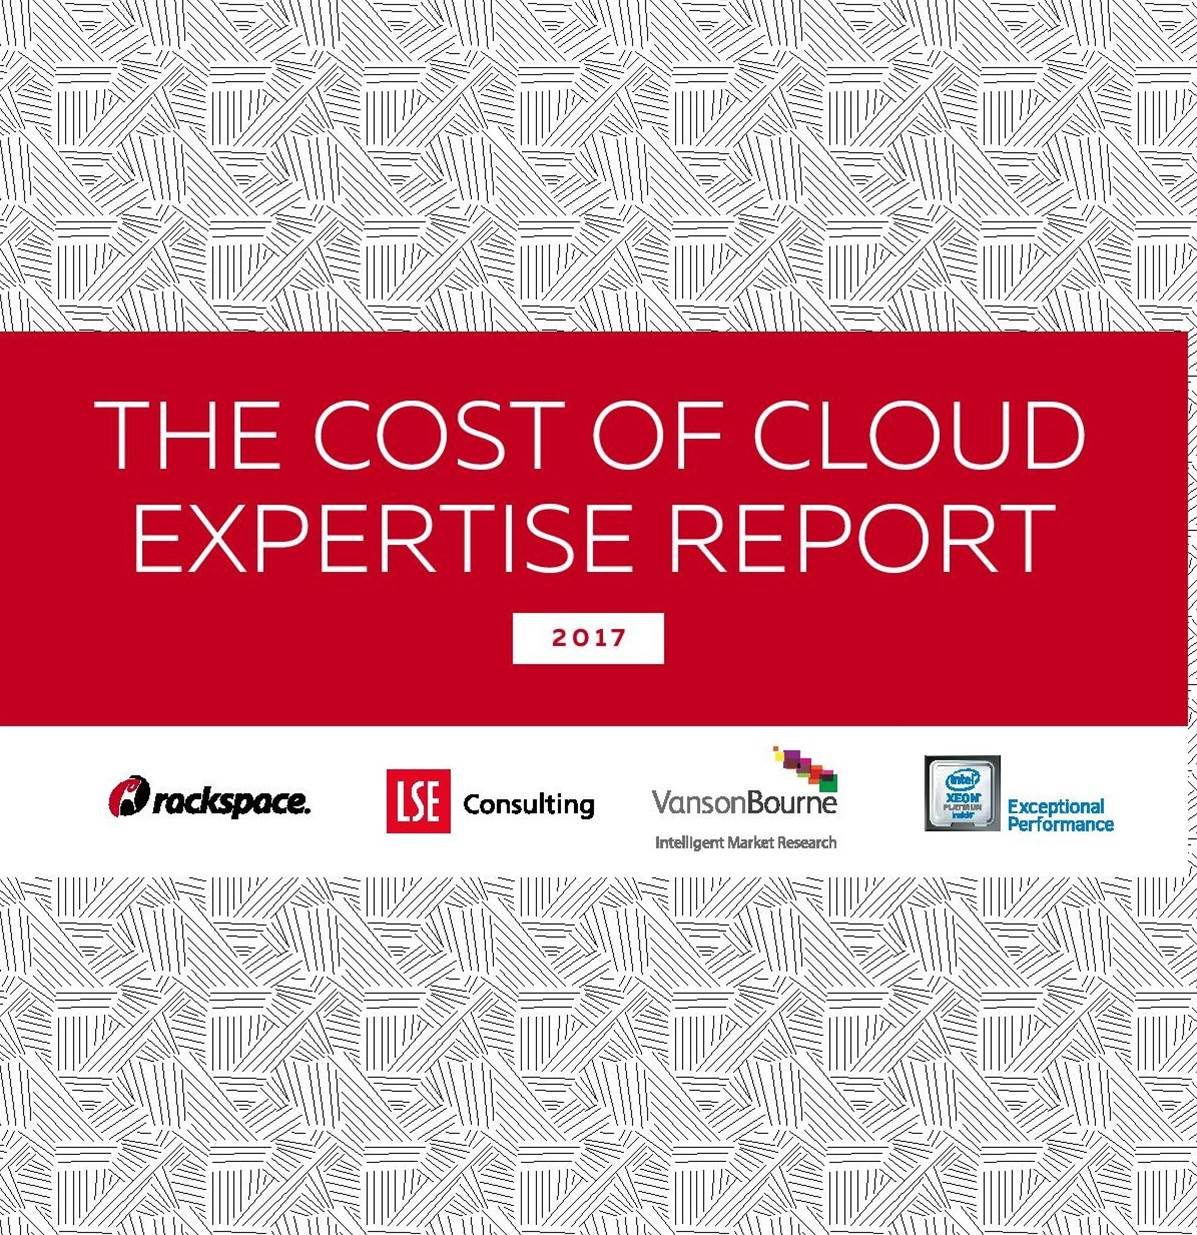 The Cost of Cloud Expertise report